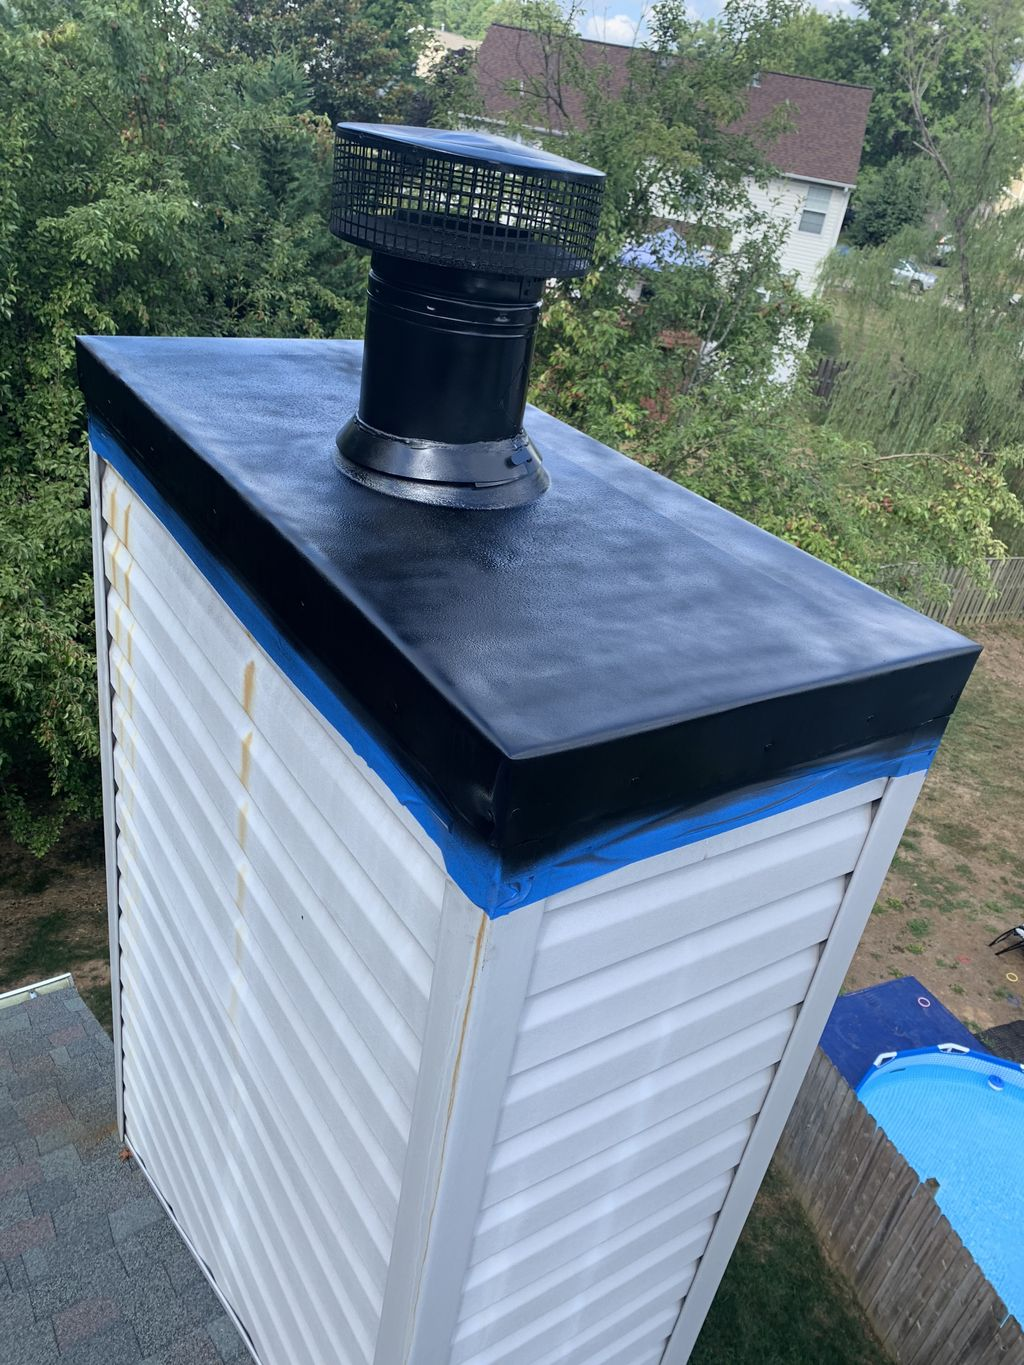 Chimney chase cover repair